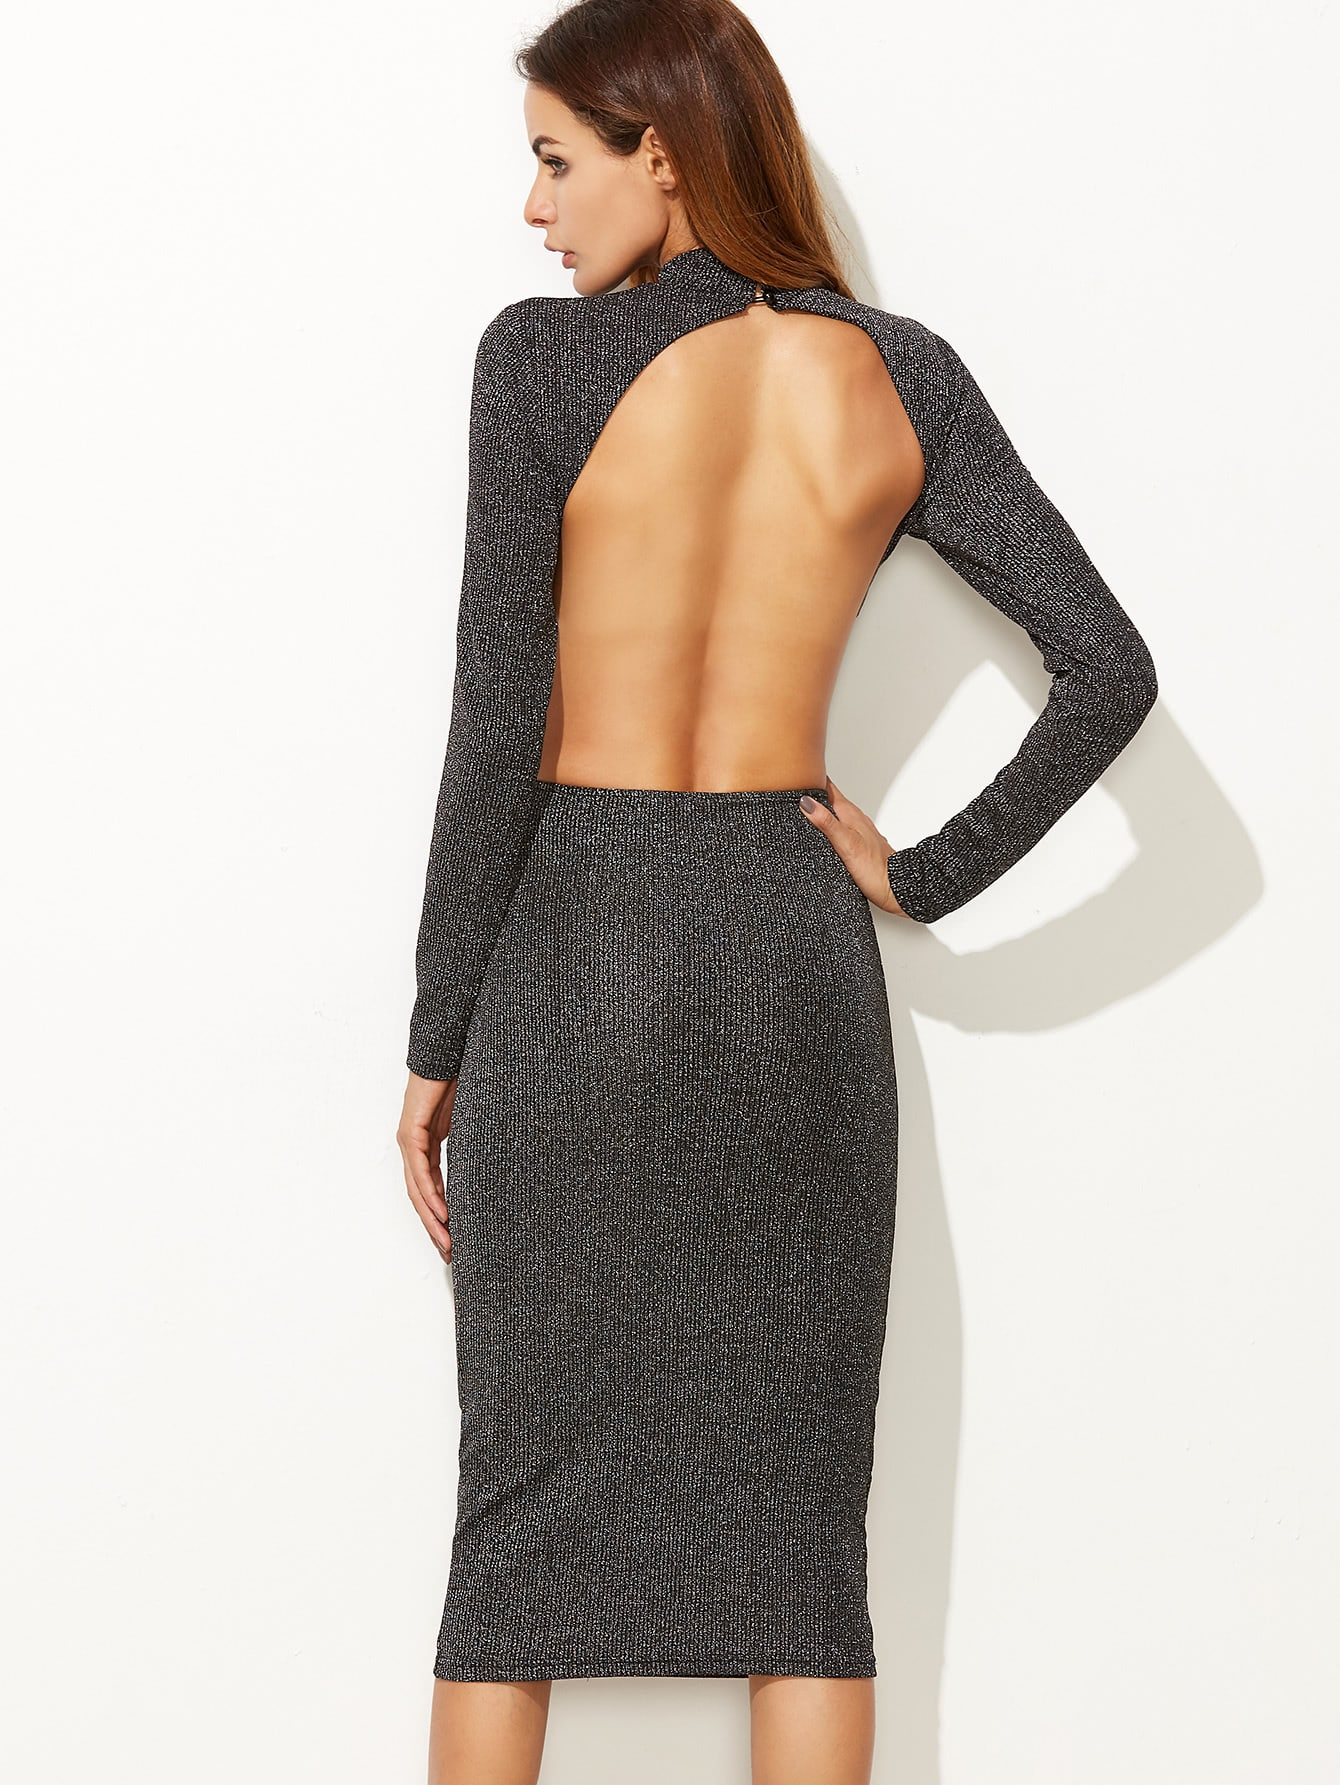 Grey Ribbed Knit Open Back Sparkle Dress dress161101708